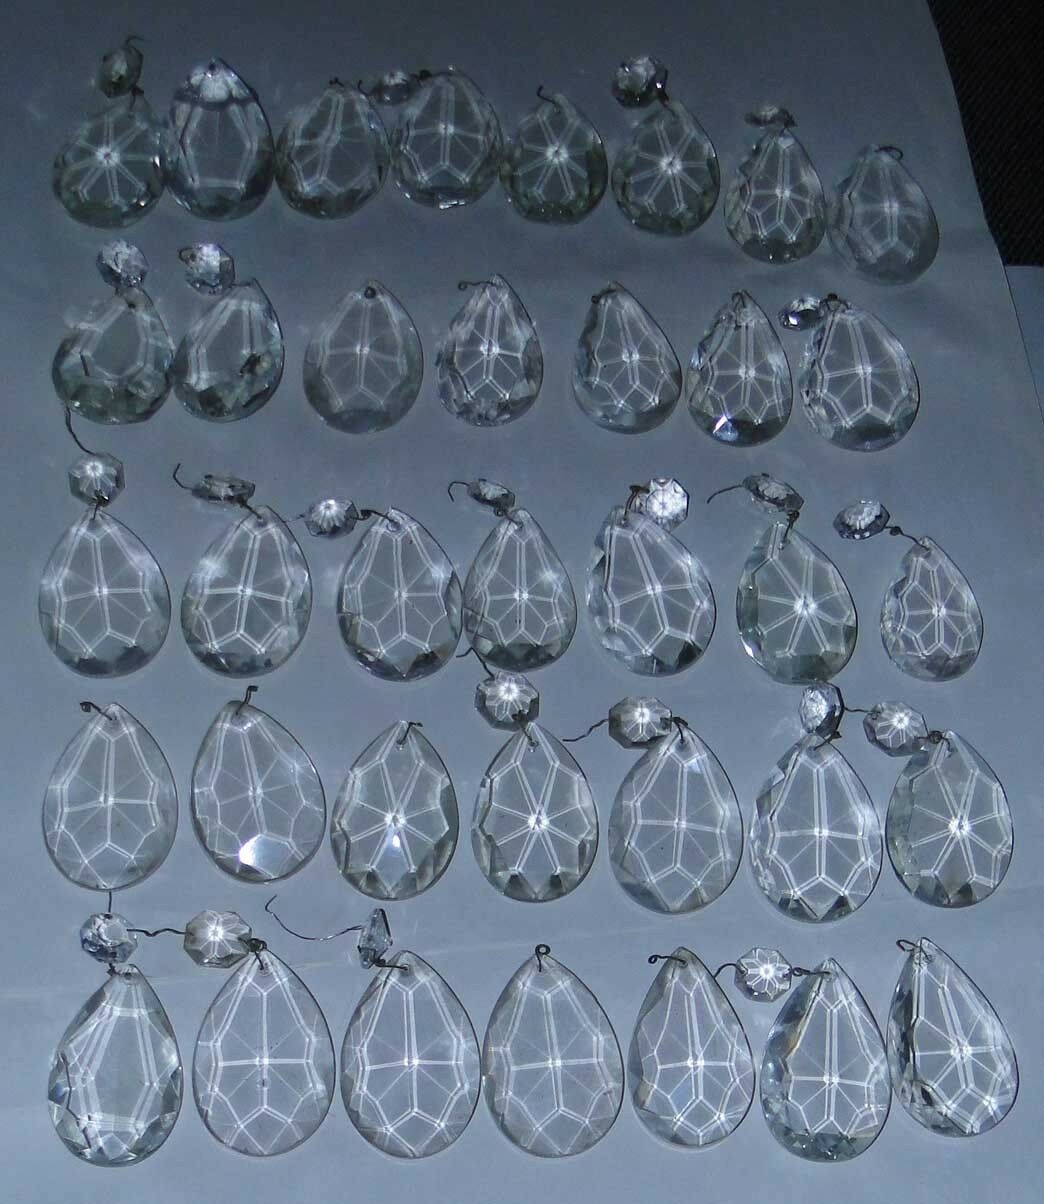 LARGE High Quality Lead French Pendant Crystals For Lamp & Chandeliers 35 PIECES